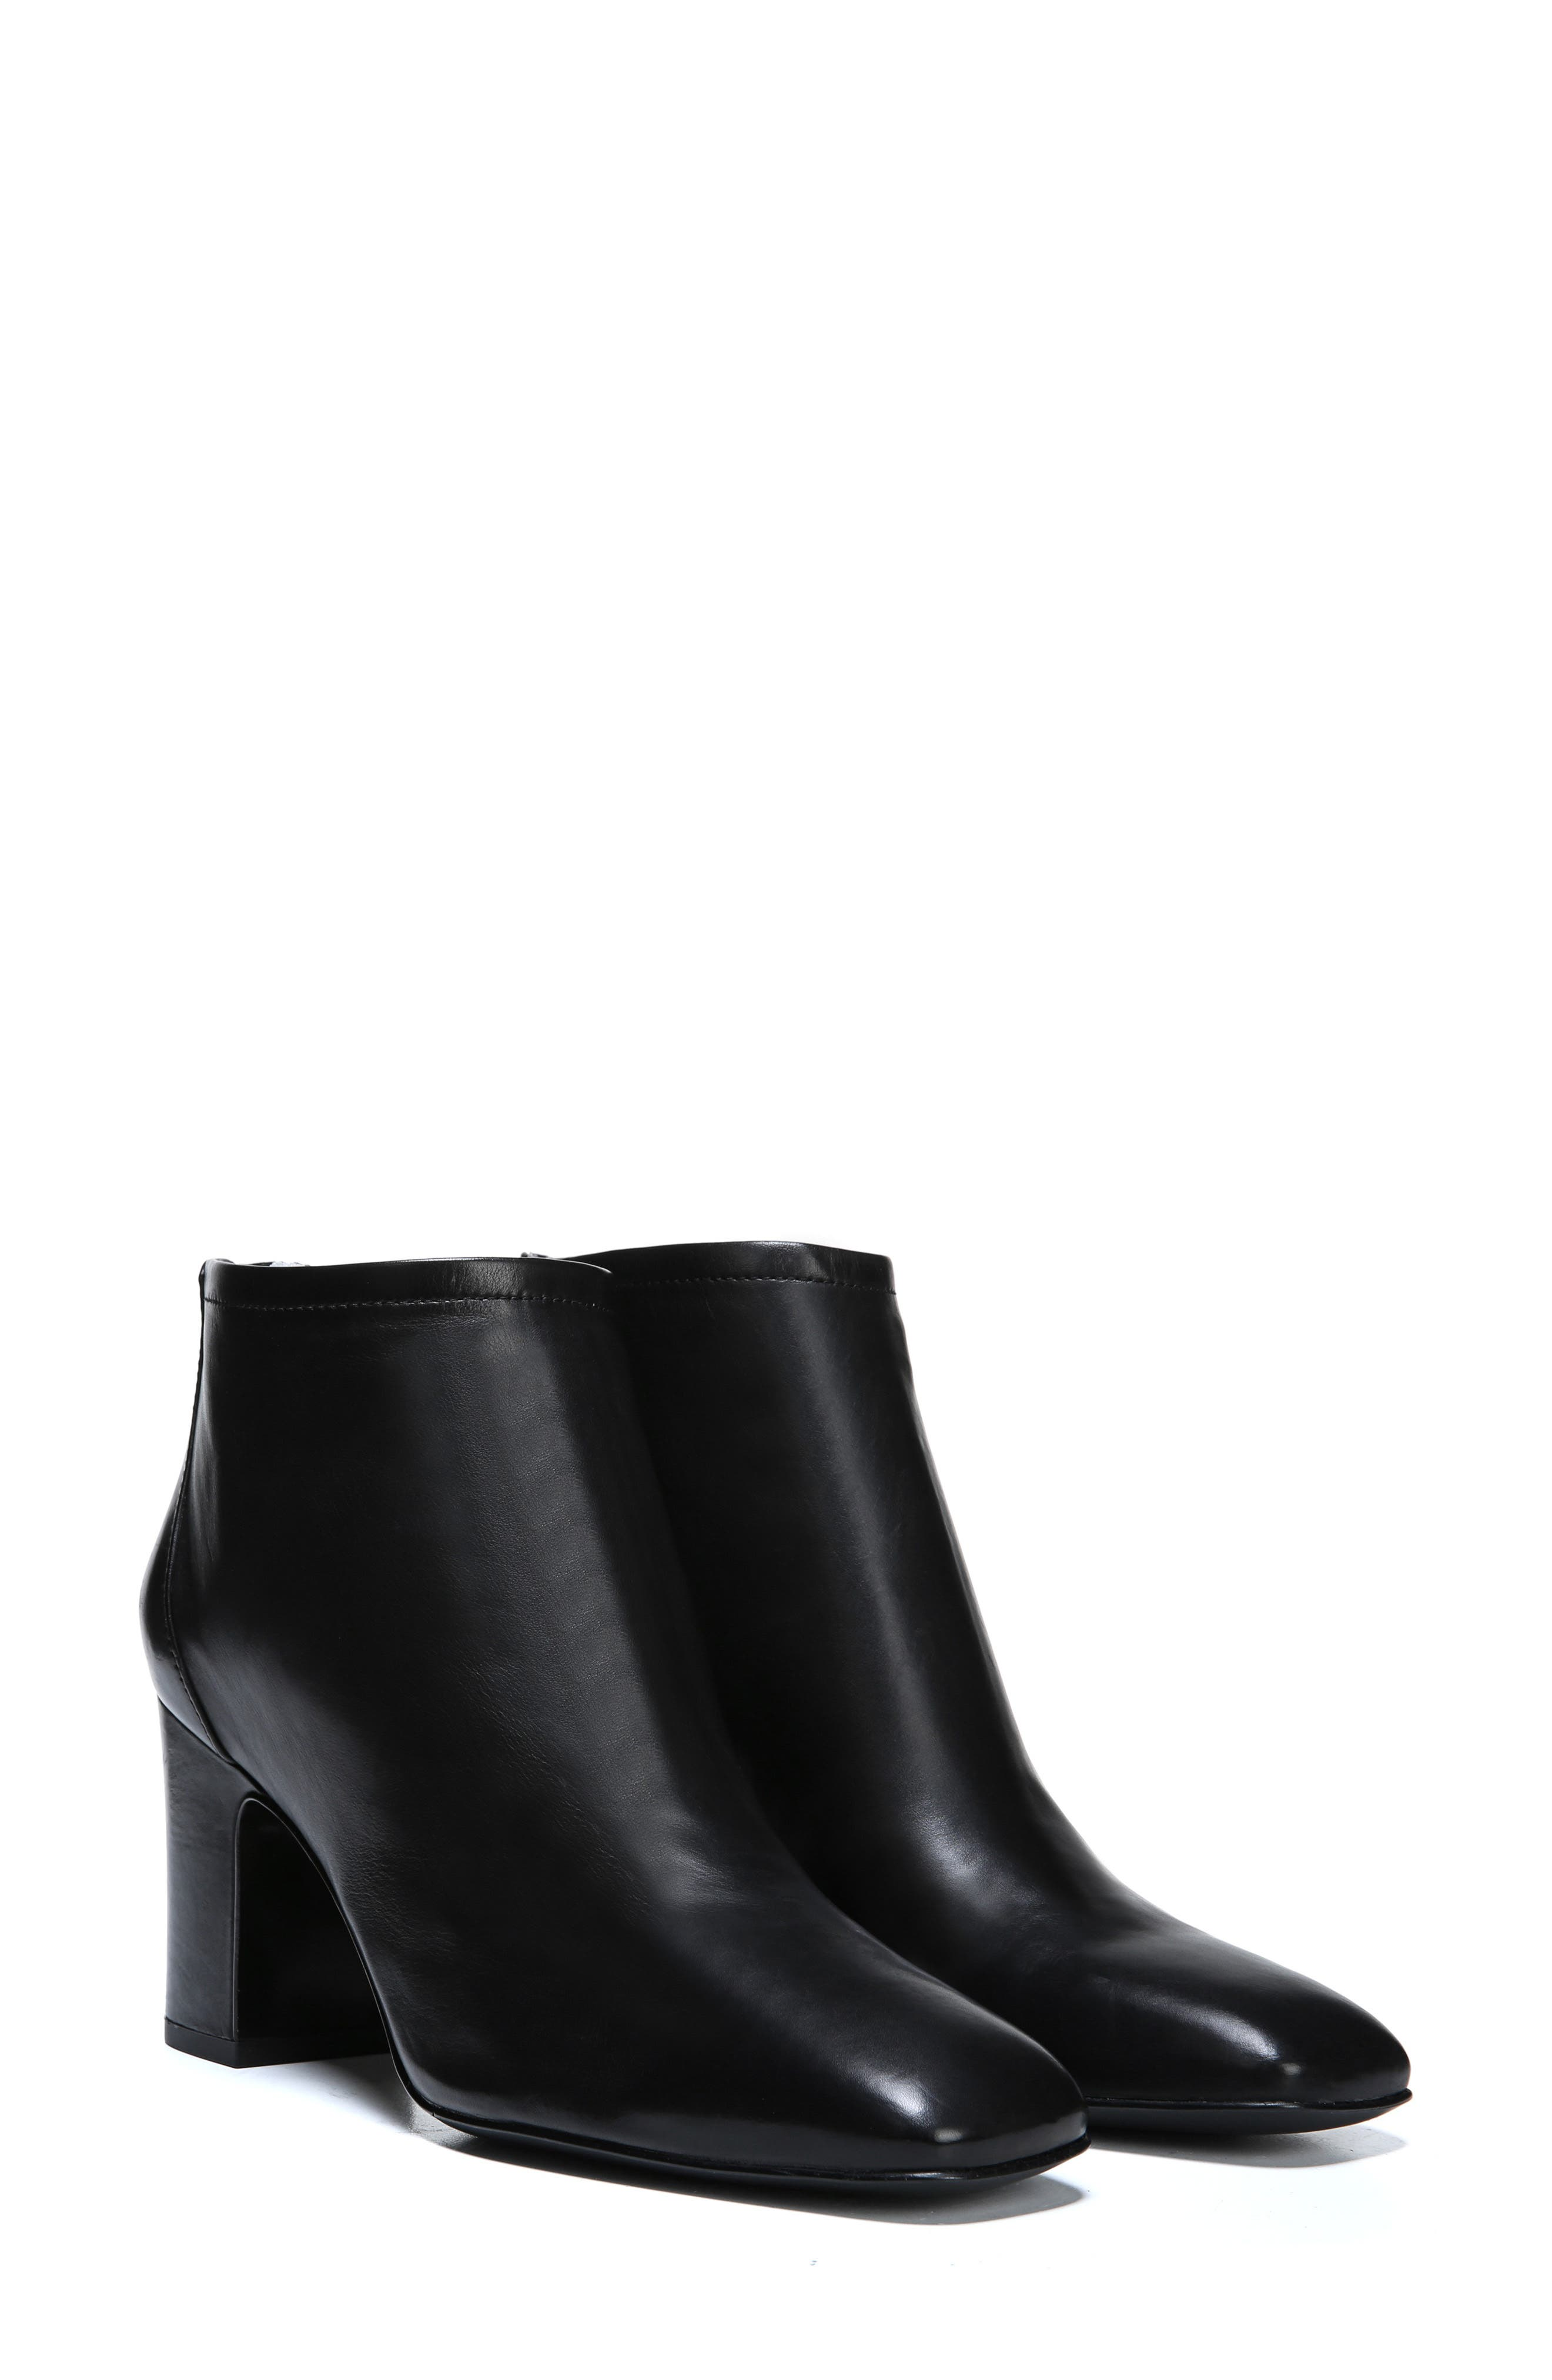 Jacoby Bootie,                             Alternate thumbnail 8, color,                             BLACK STRETCH LEATHER